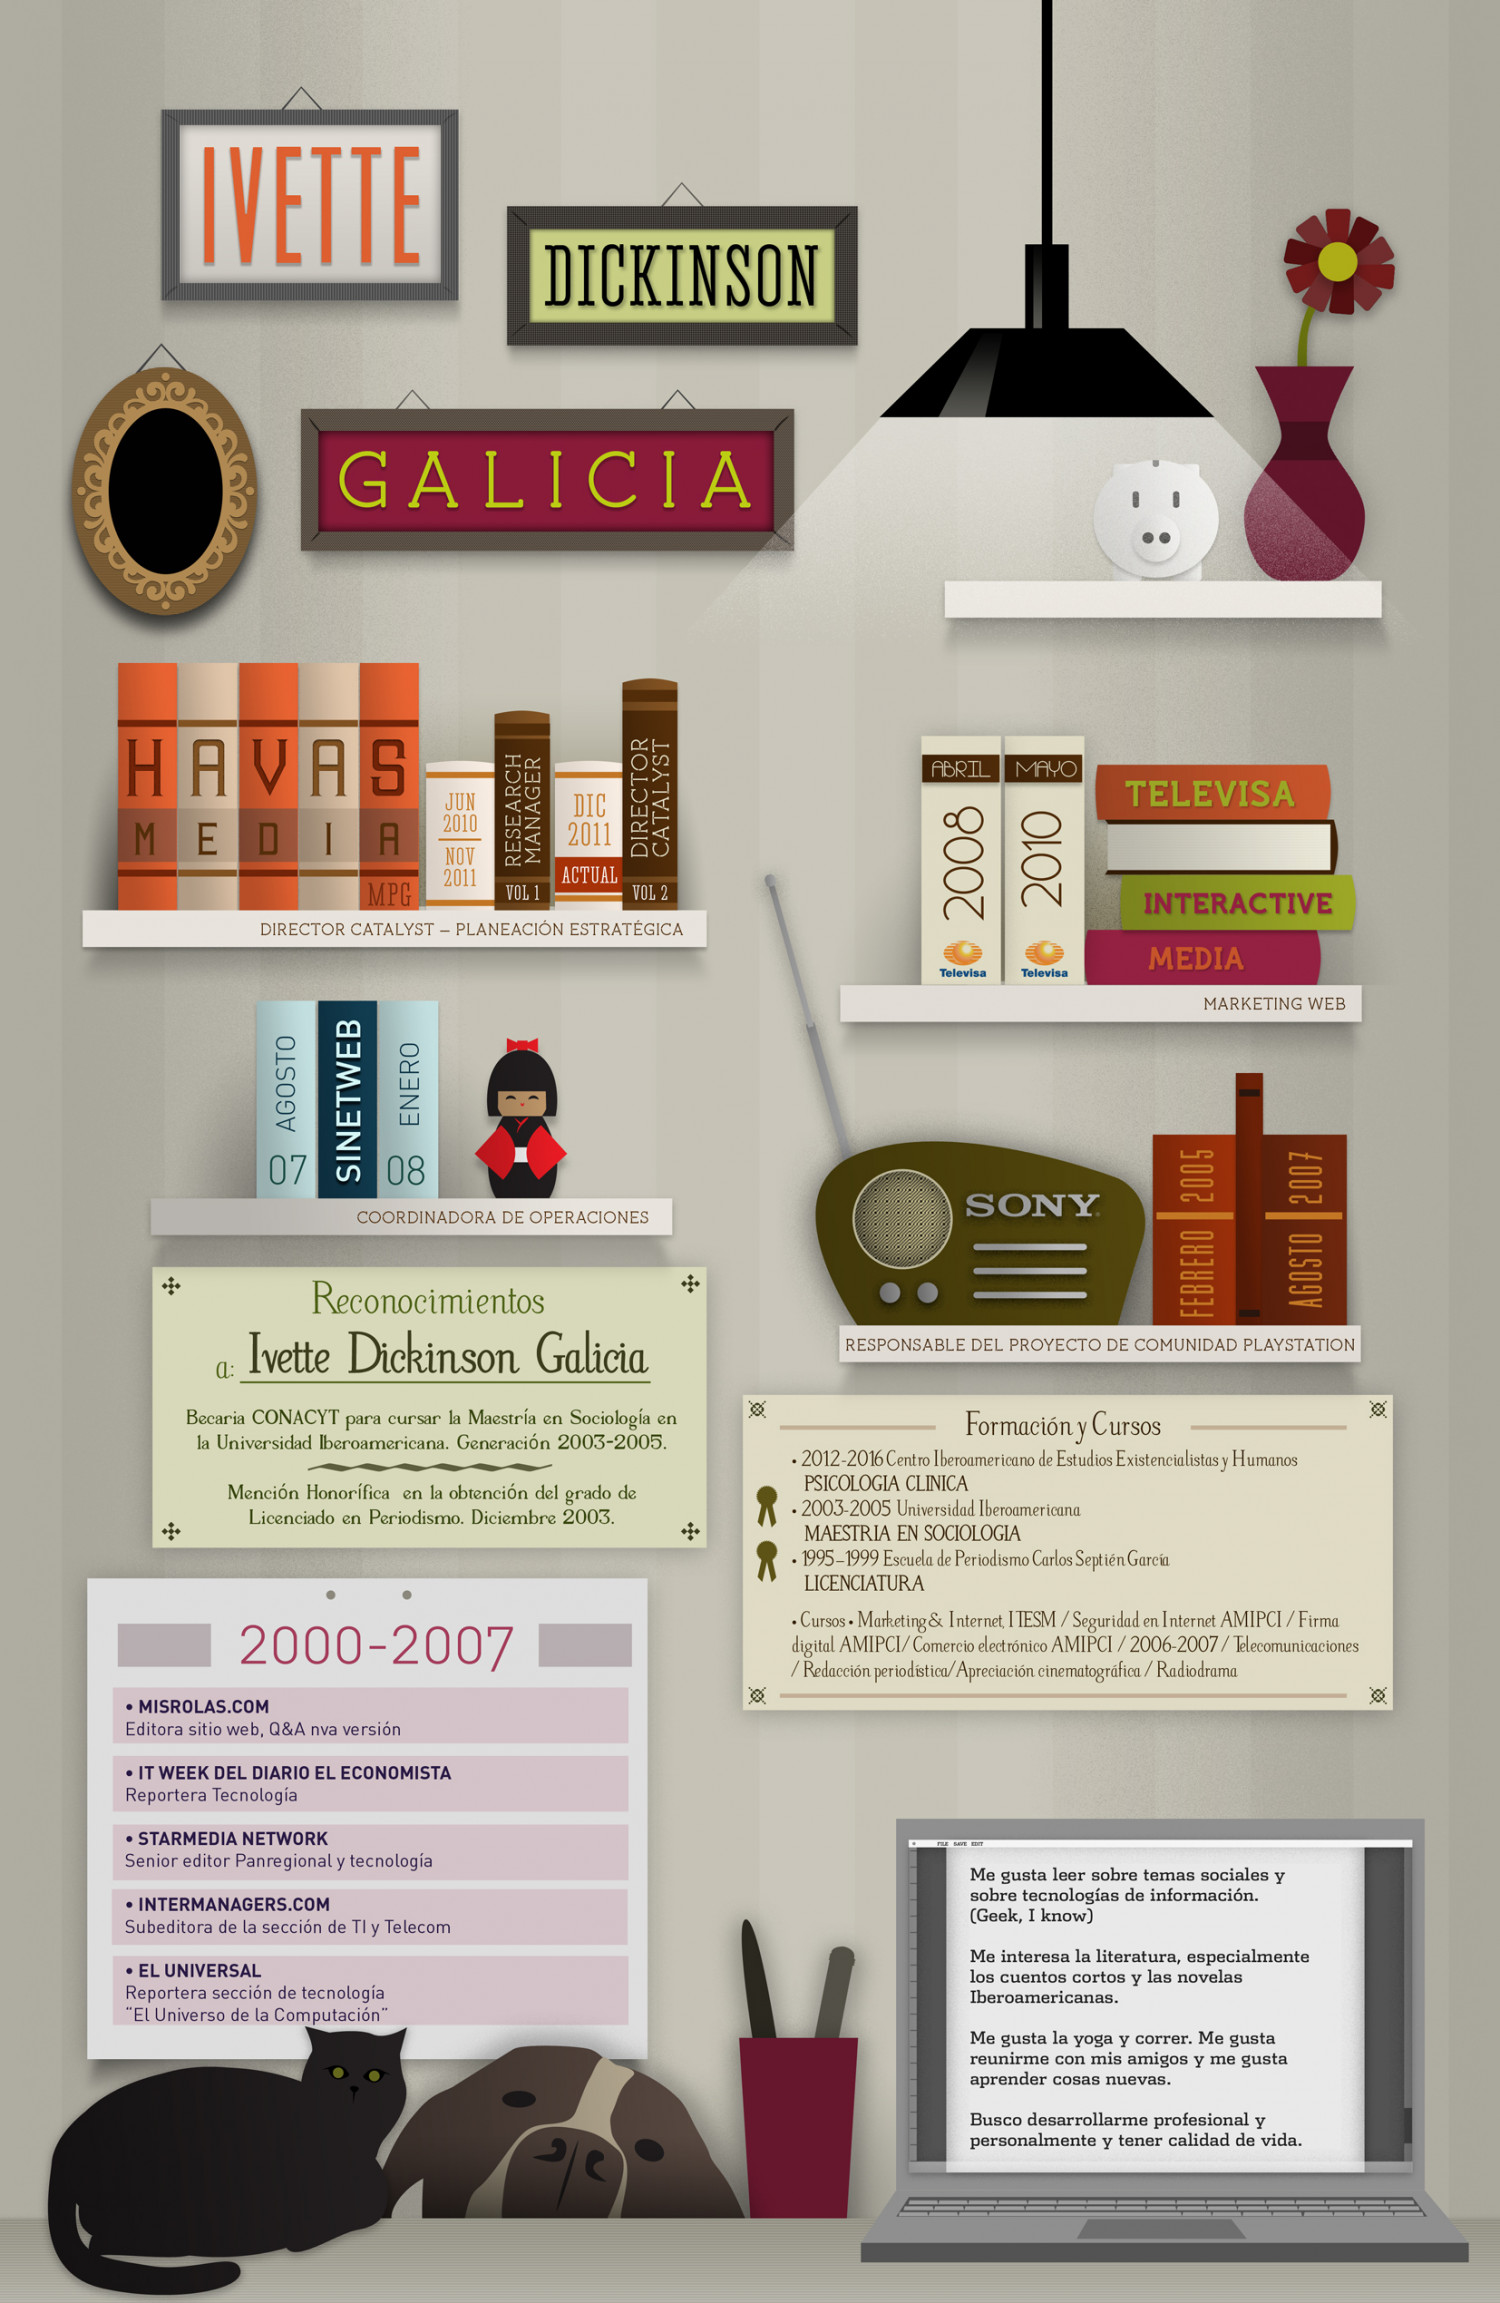 Ivette Dickinson Infographic